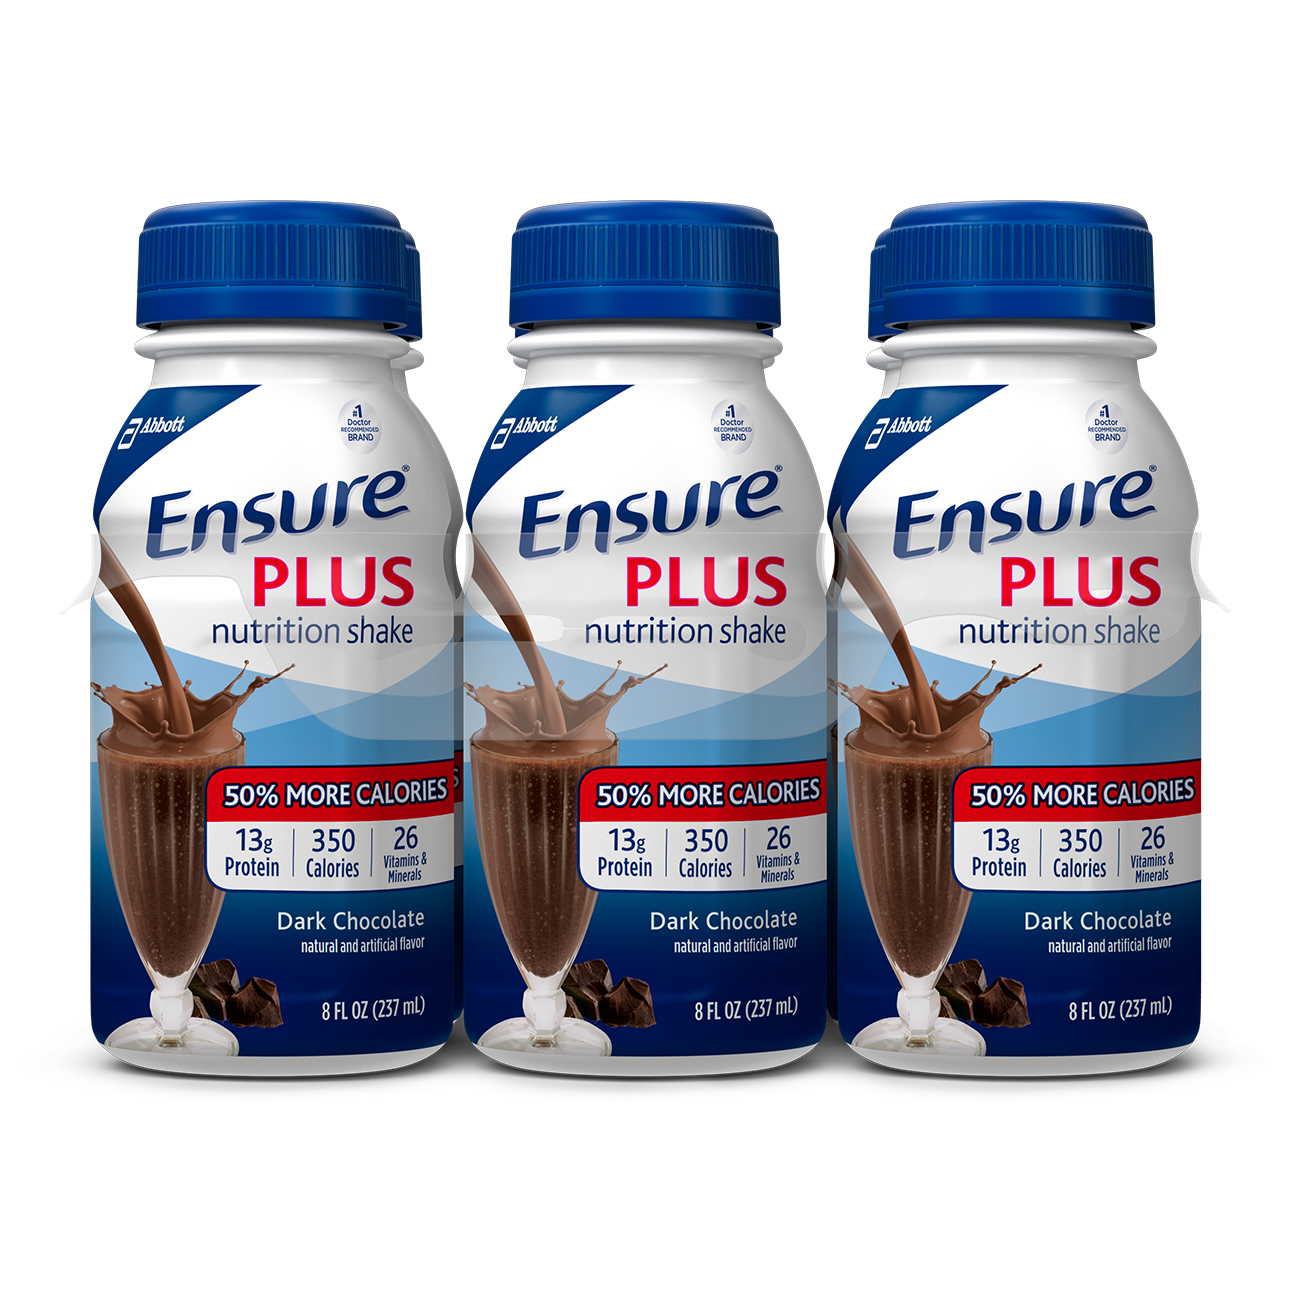 Ensure Plus Nutrition Shake, Rich Dark Chocolate, 8 fl oz (4-6 Packs) by Abbott Nutrition